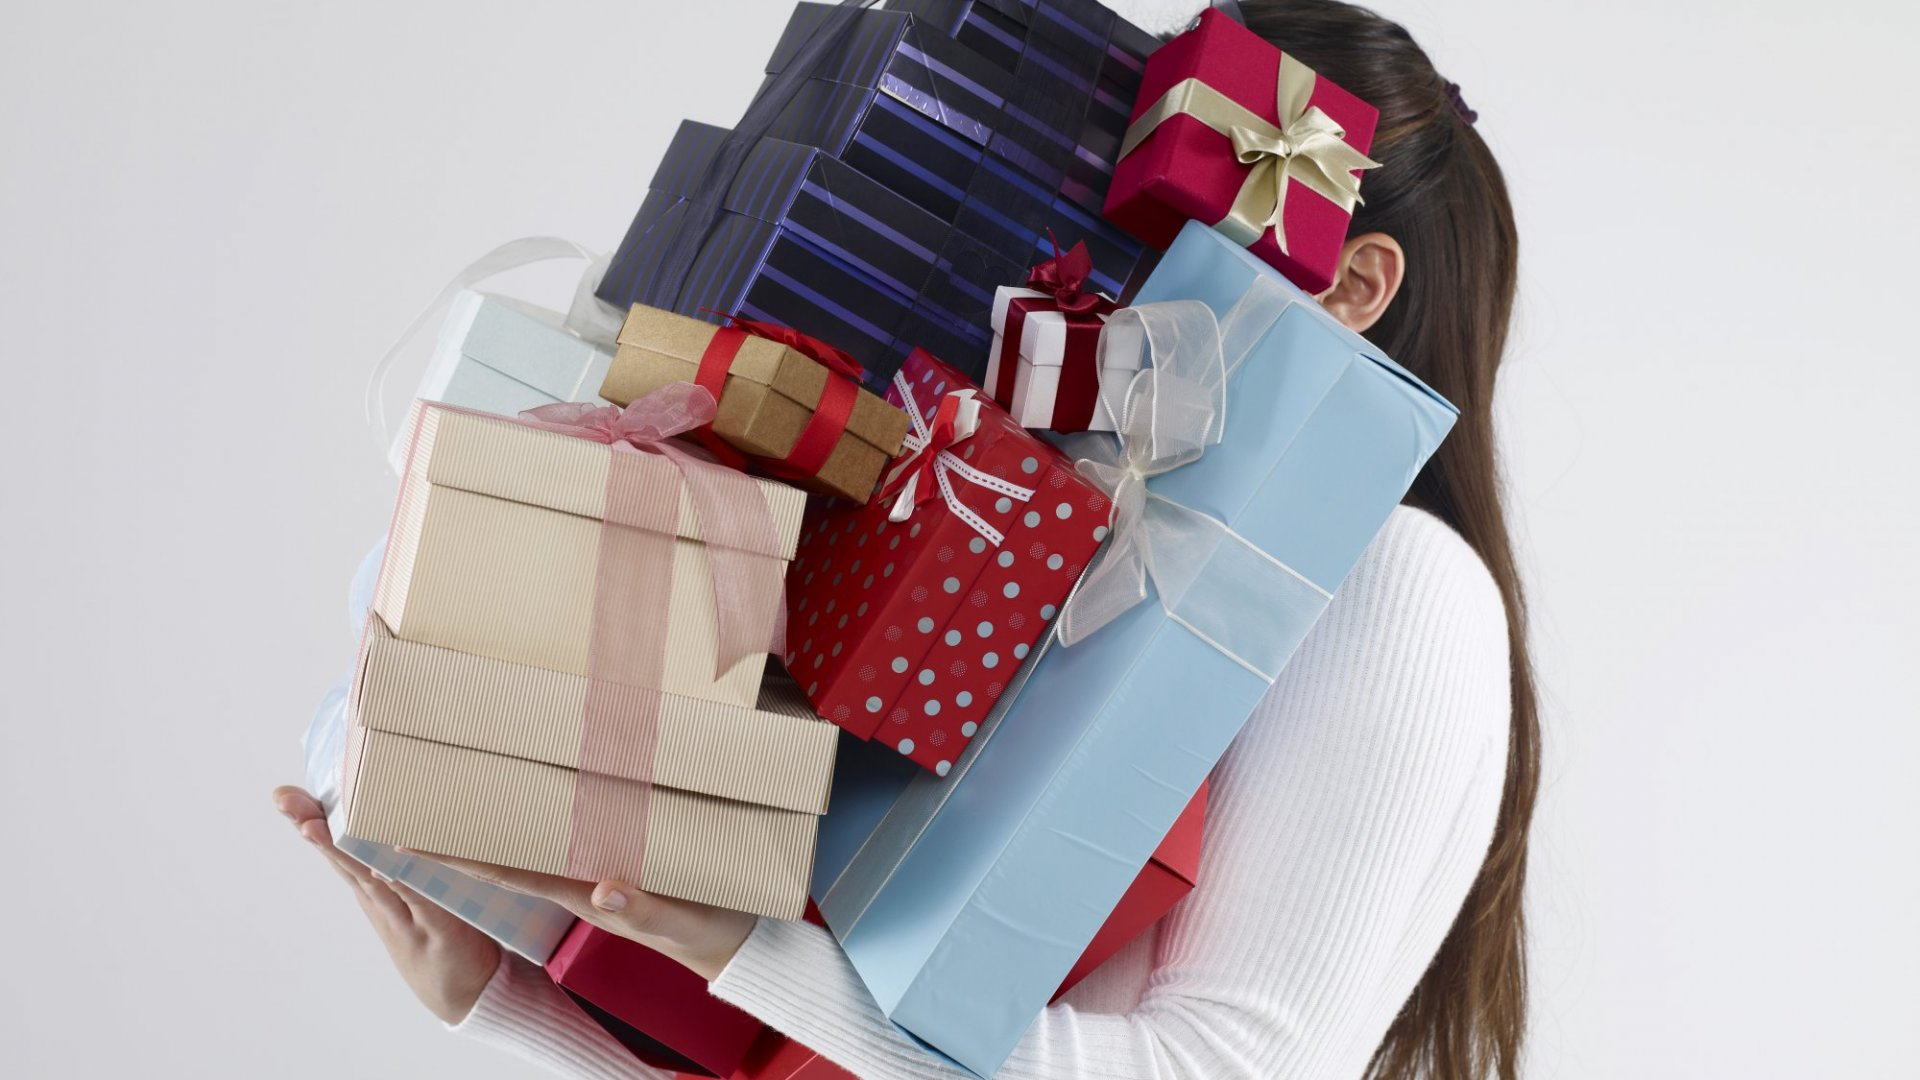 Holidays Can Be the Worst Time to Send Client Gifts, According to Research. Here's What to Do Instead